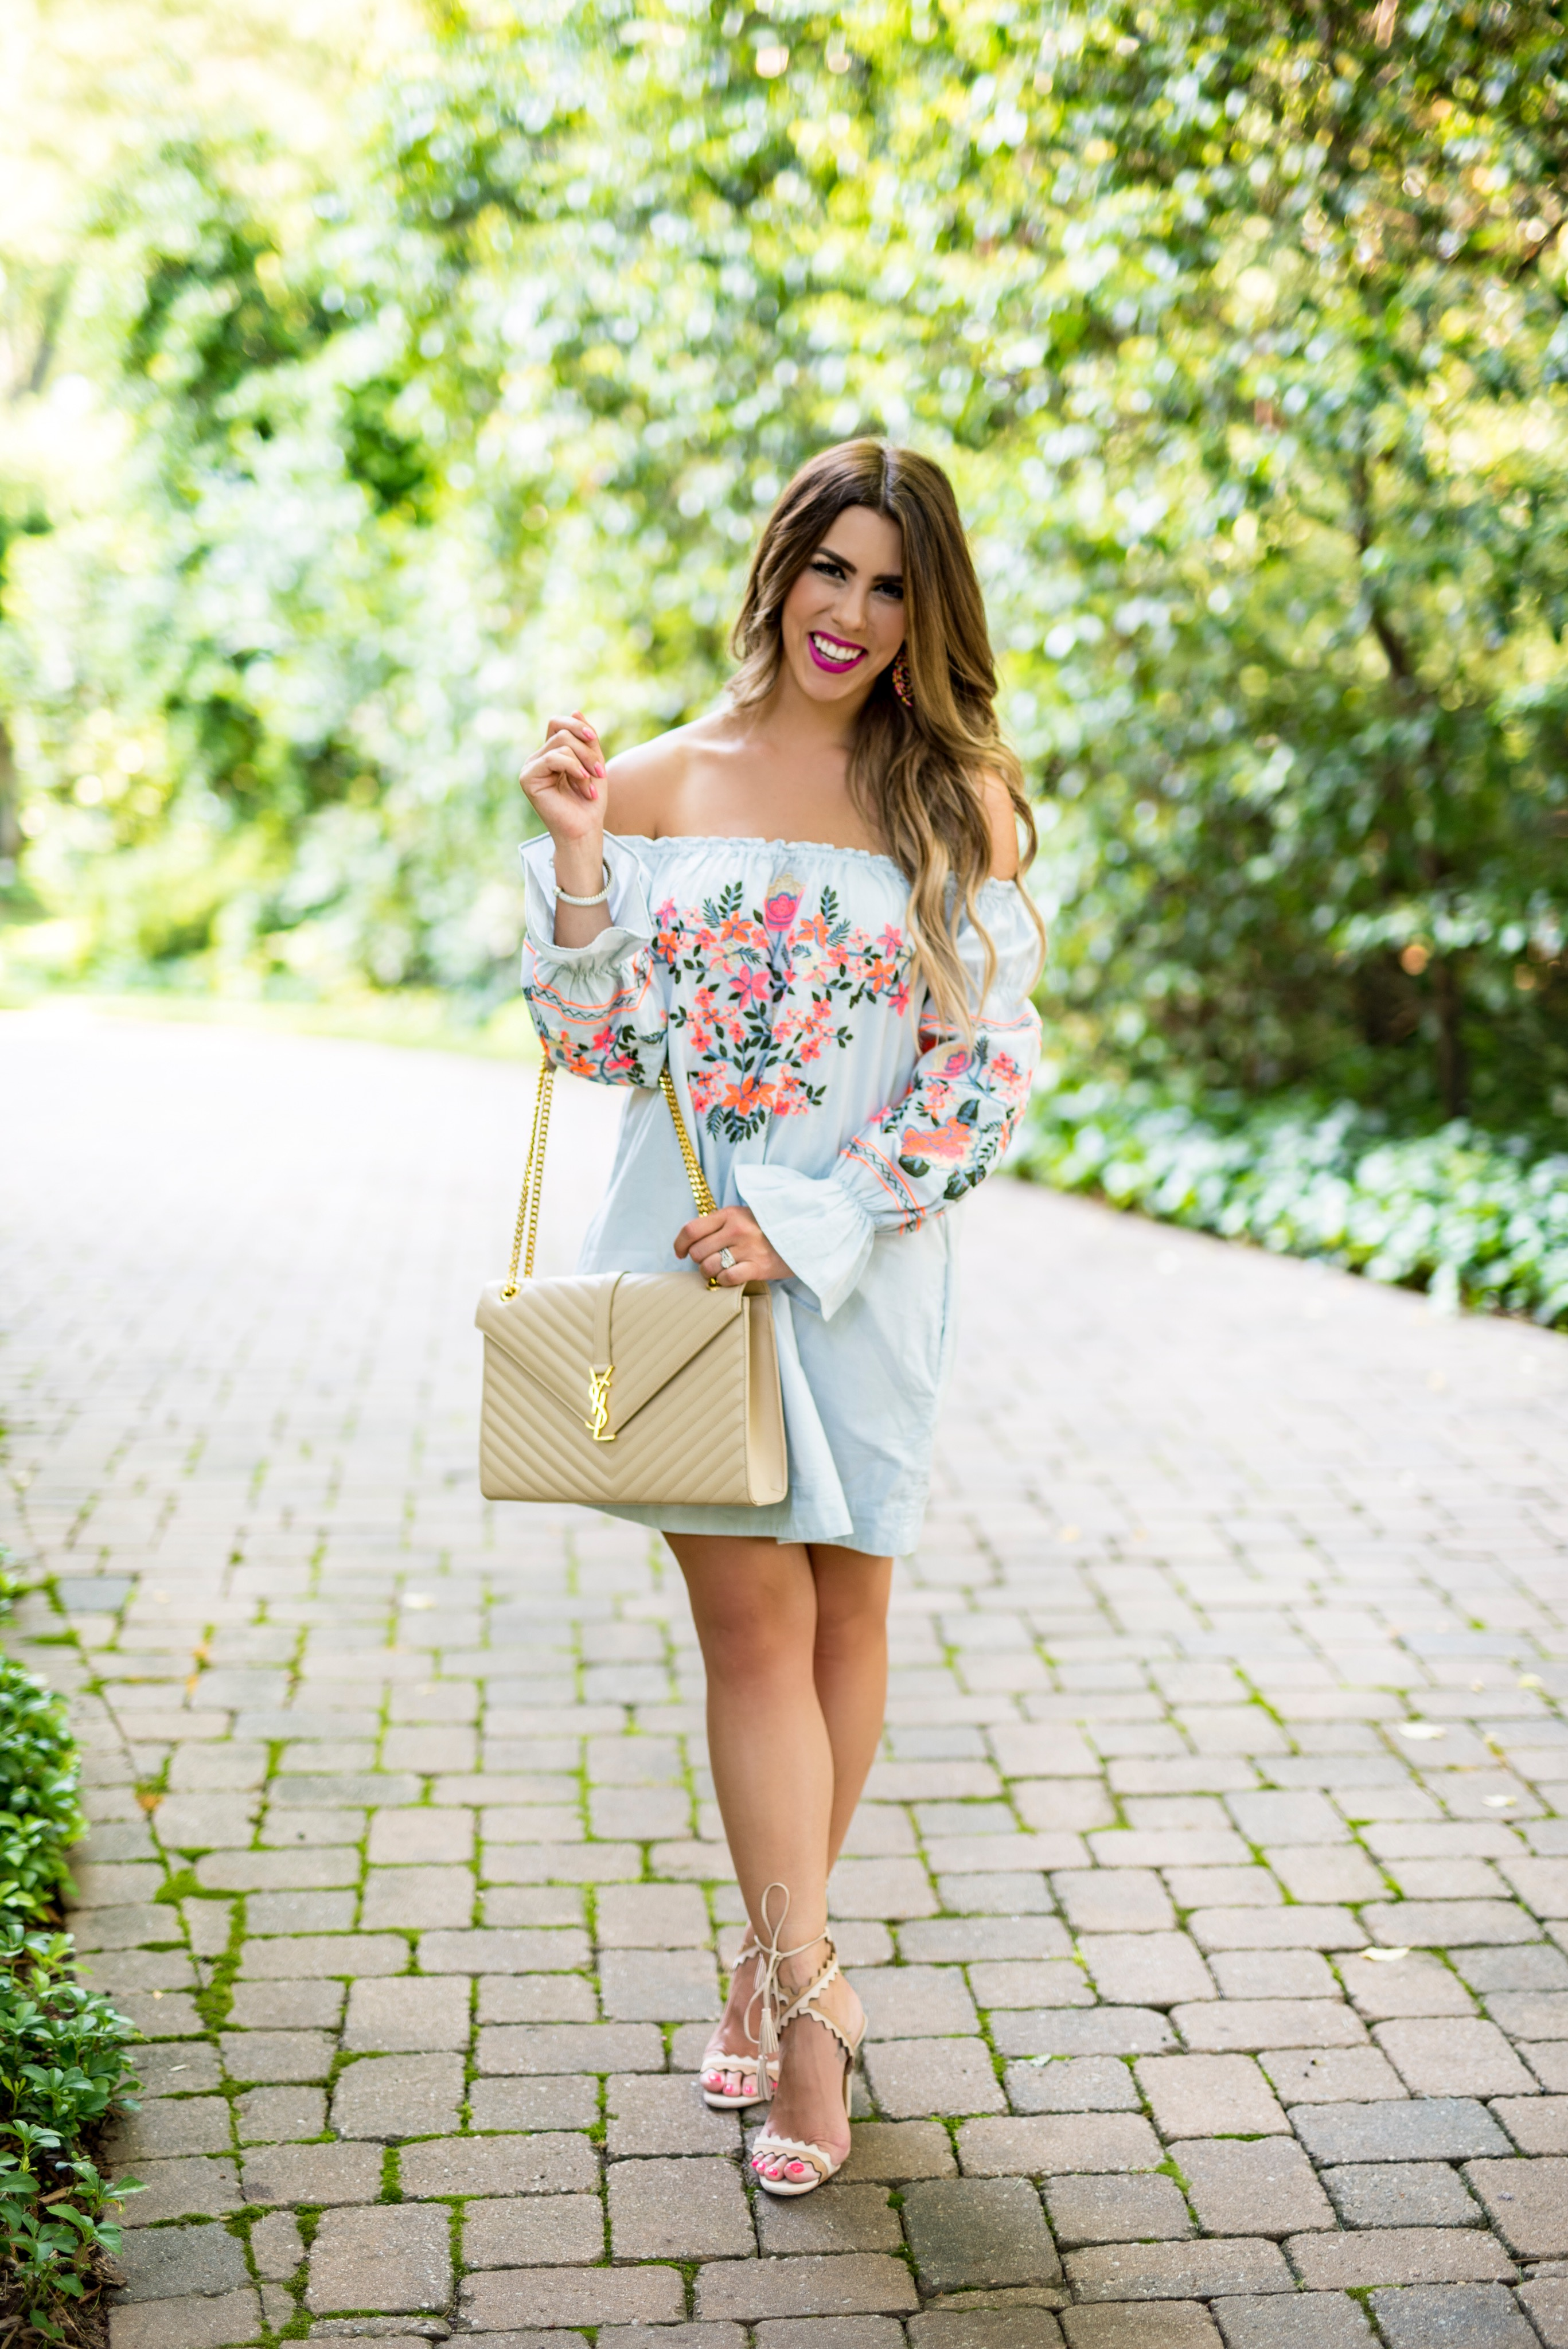 trend to try statement sleeves bell sleeves embroidered sleeve dress embroidered dress dresses with statement sleeves ysl purse free people dress my favorite summer dresses summer style summer fashion light blue dress with hot pink embroidery charlotte blogger